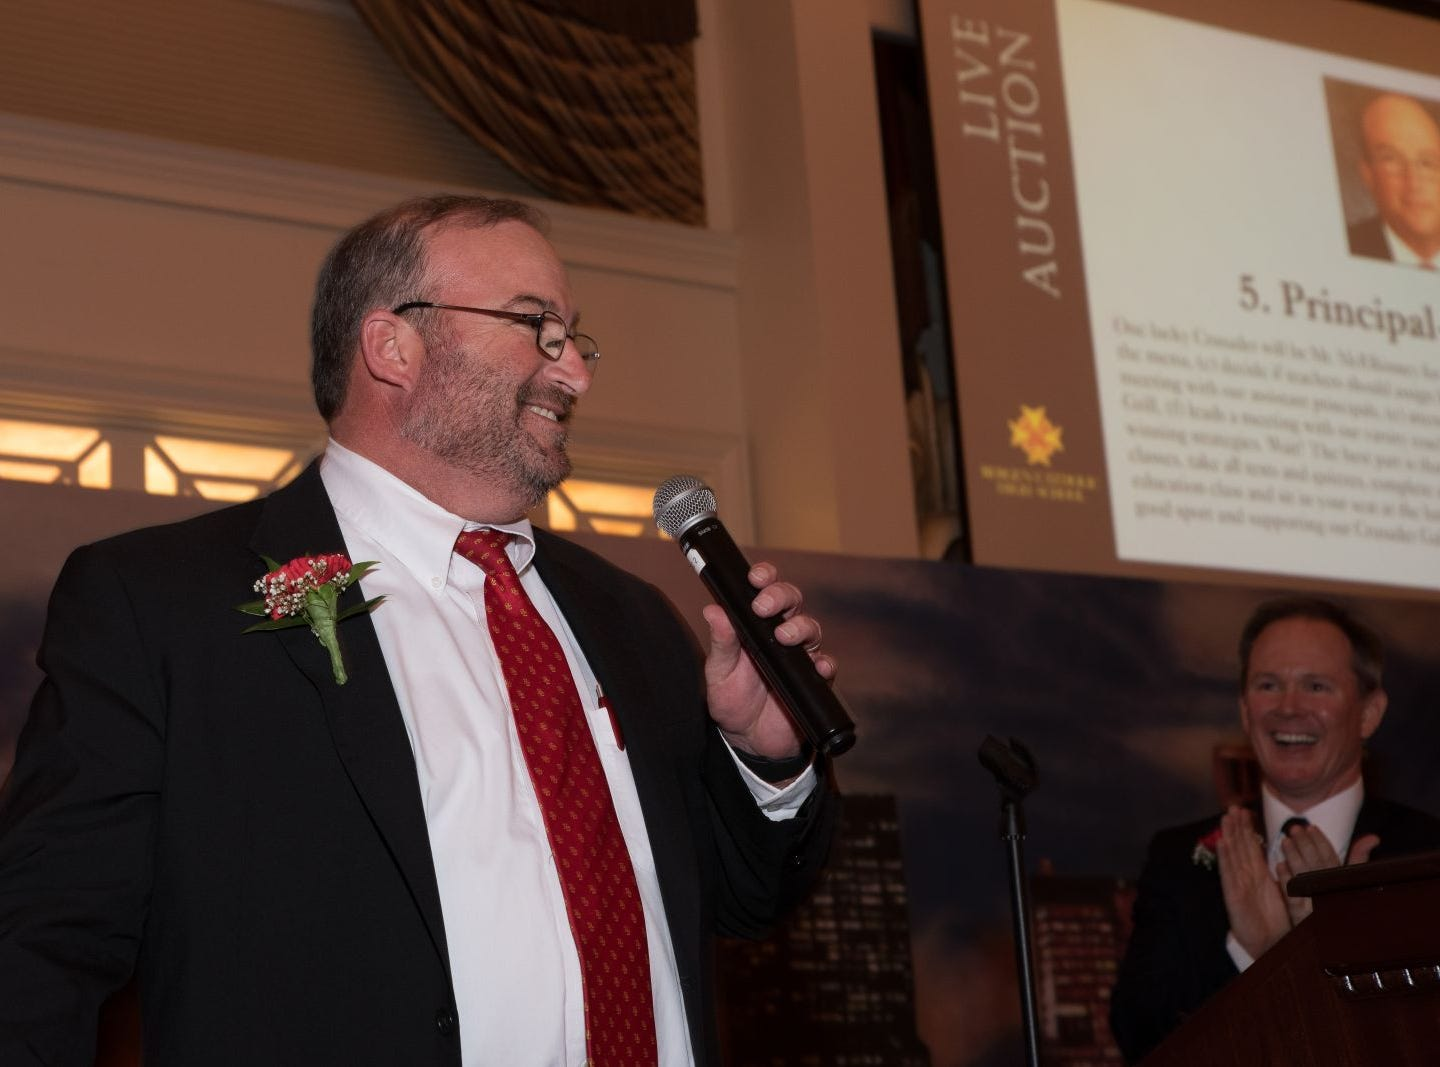 Timothy McElhinney, Principal. Bergen Catholic High School celebrates their 2018 Crusader Gala at The Venetian in Garfield. 11/16/2018